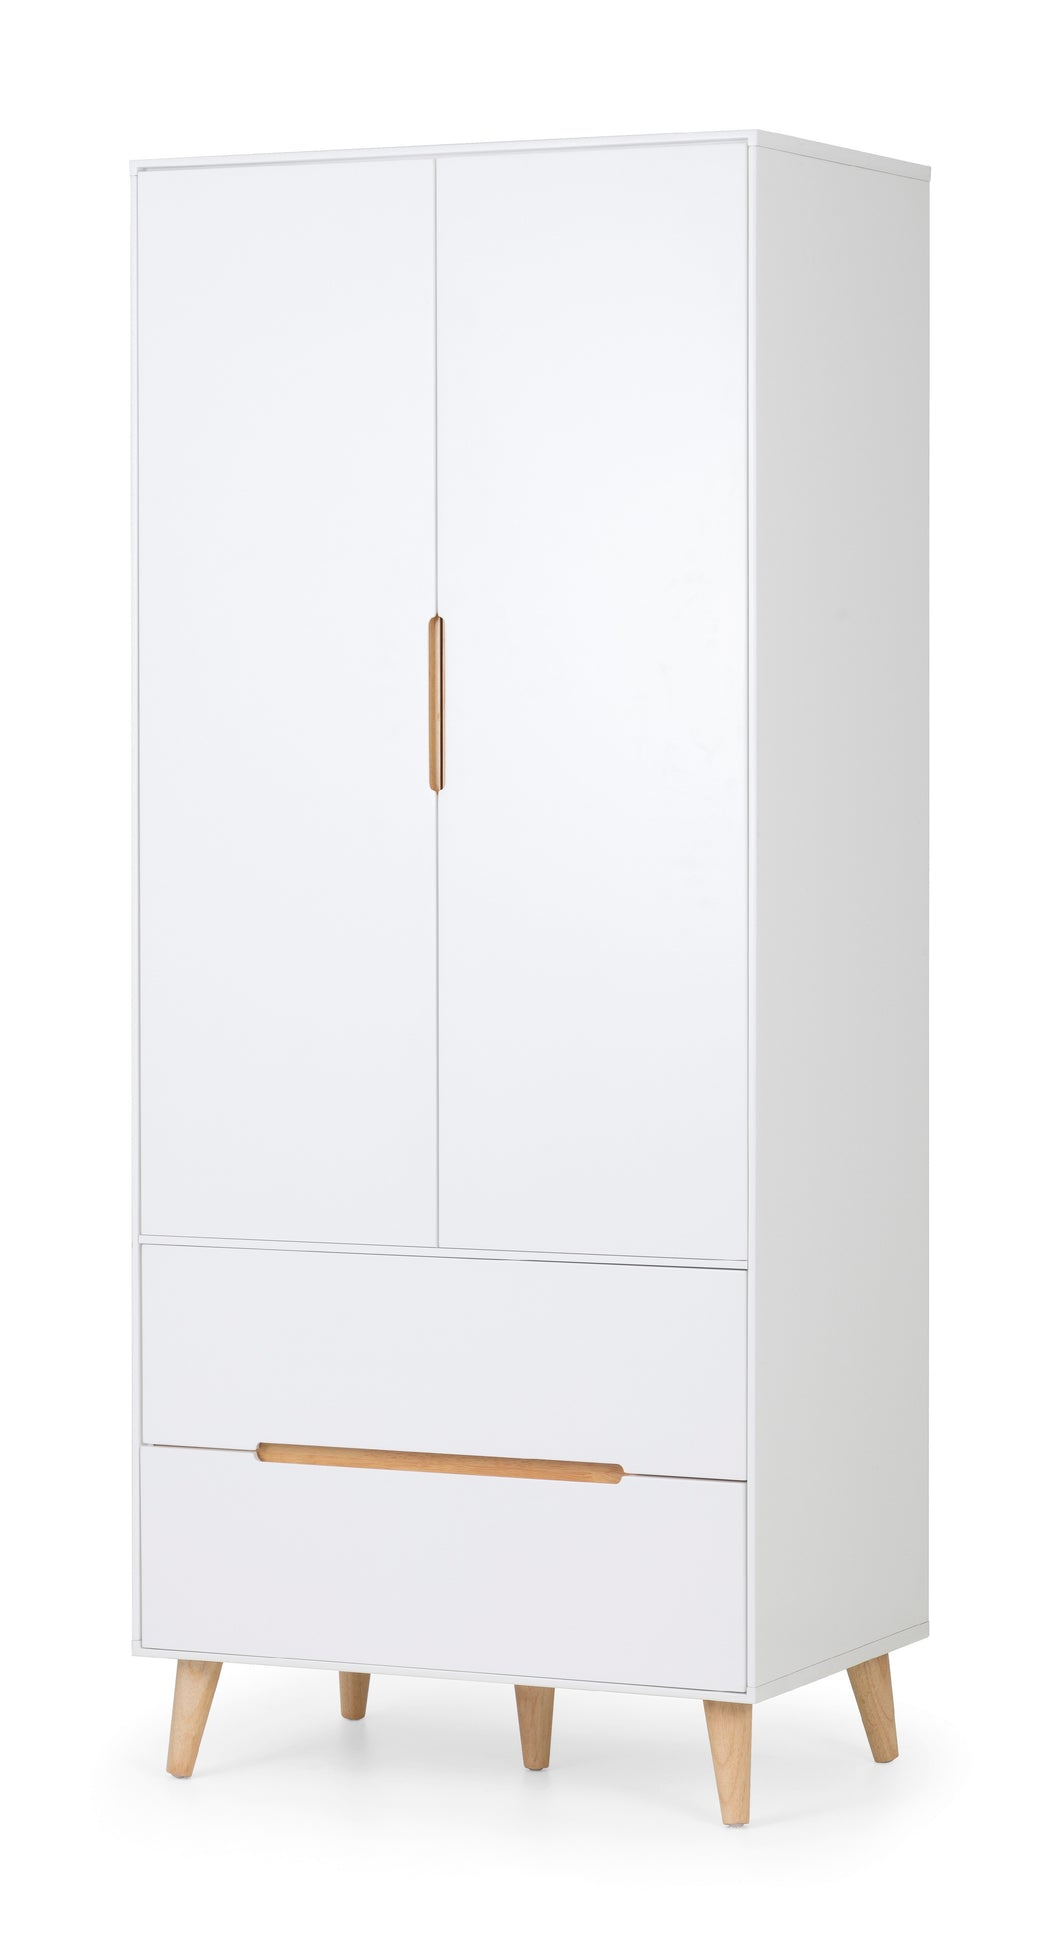 Alicia 2 Door Combi Wardrobe - Property Letting Furniture